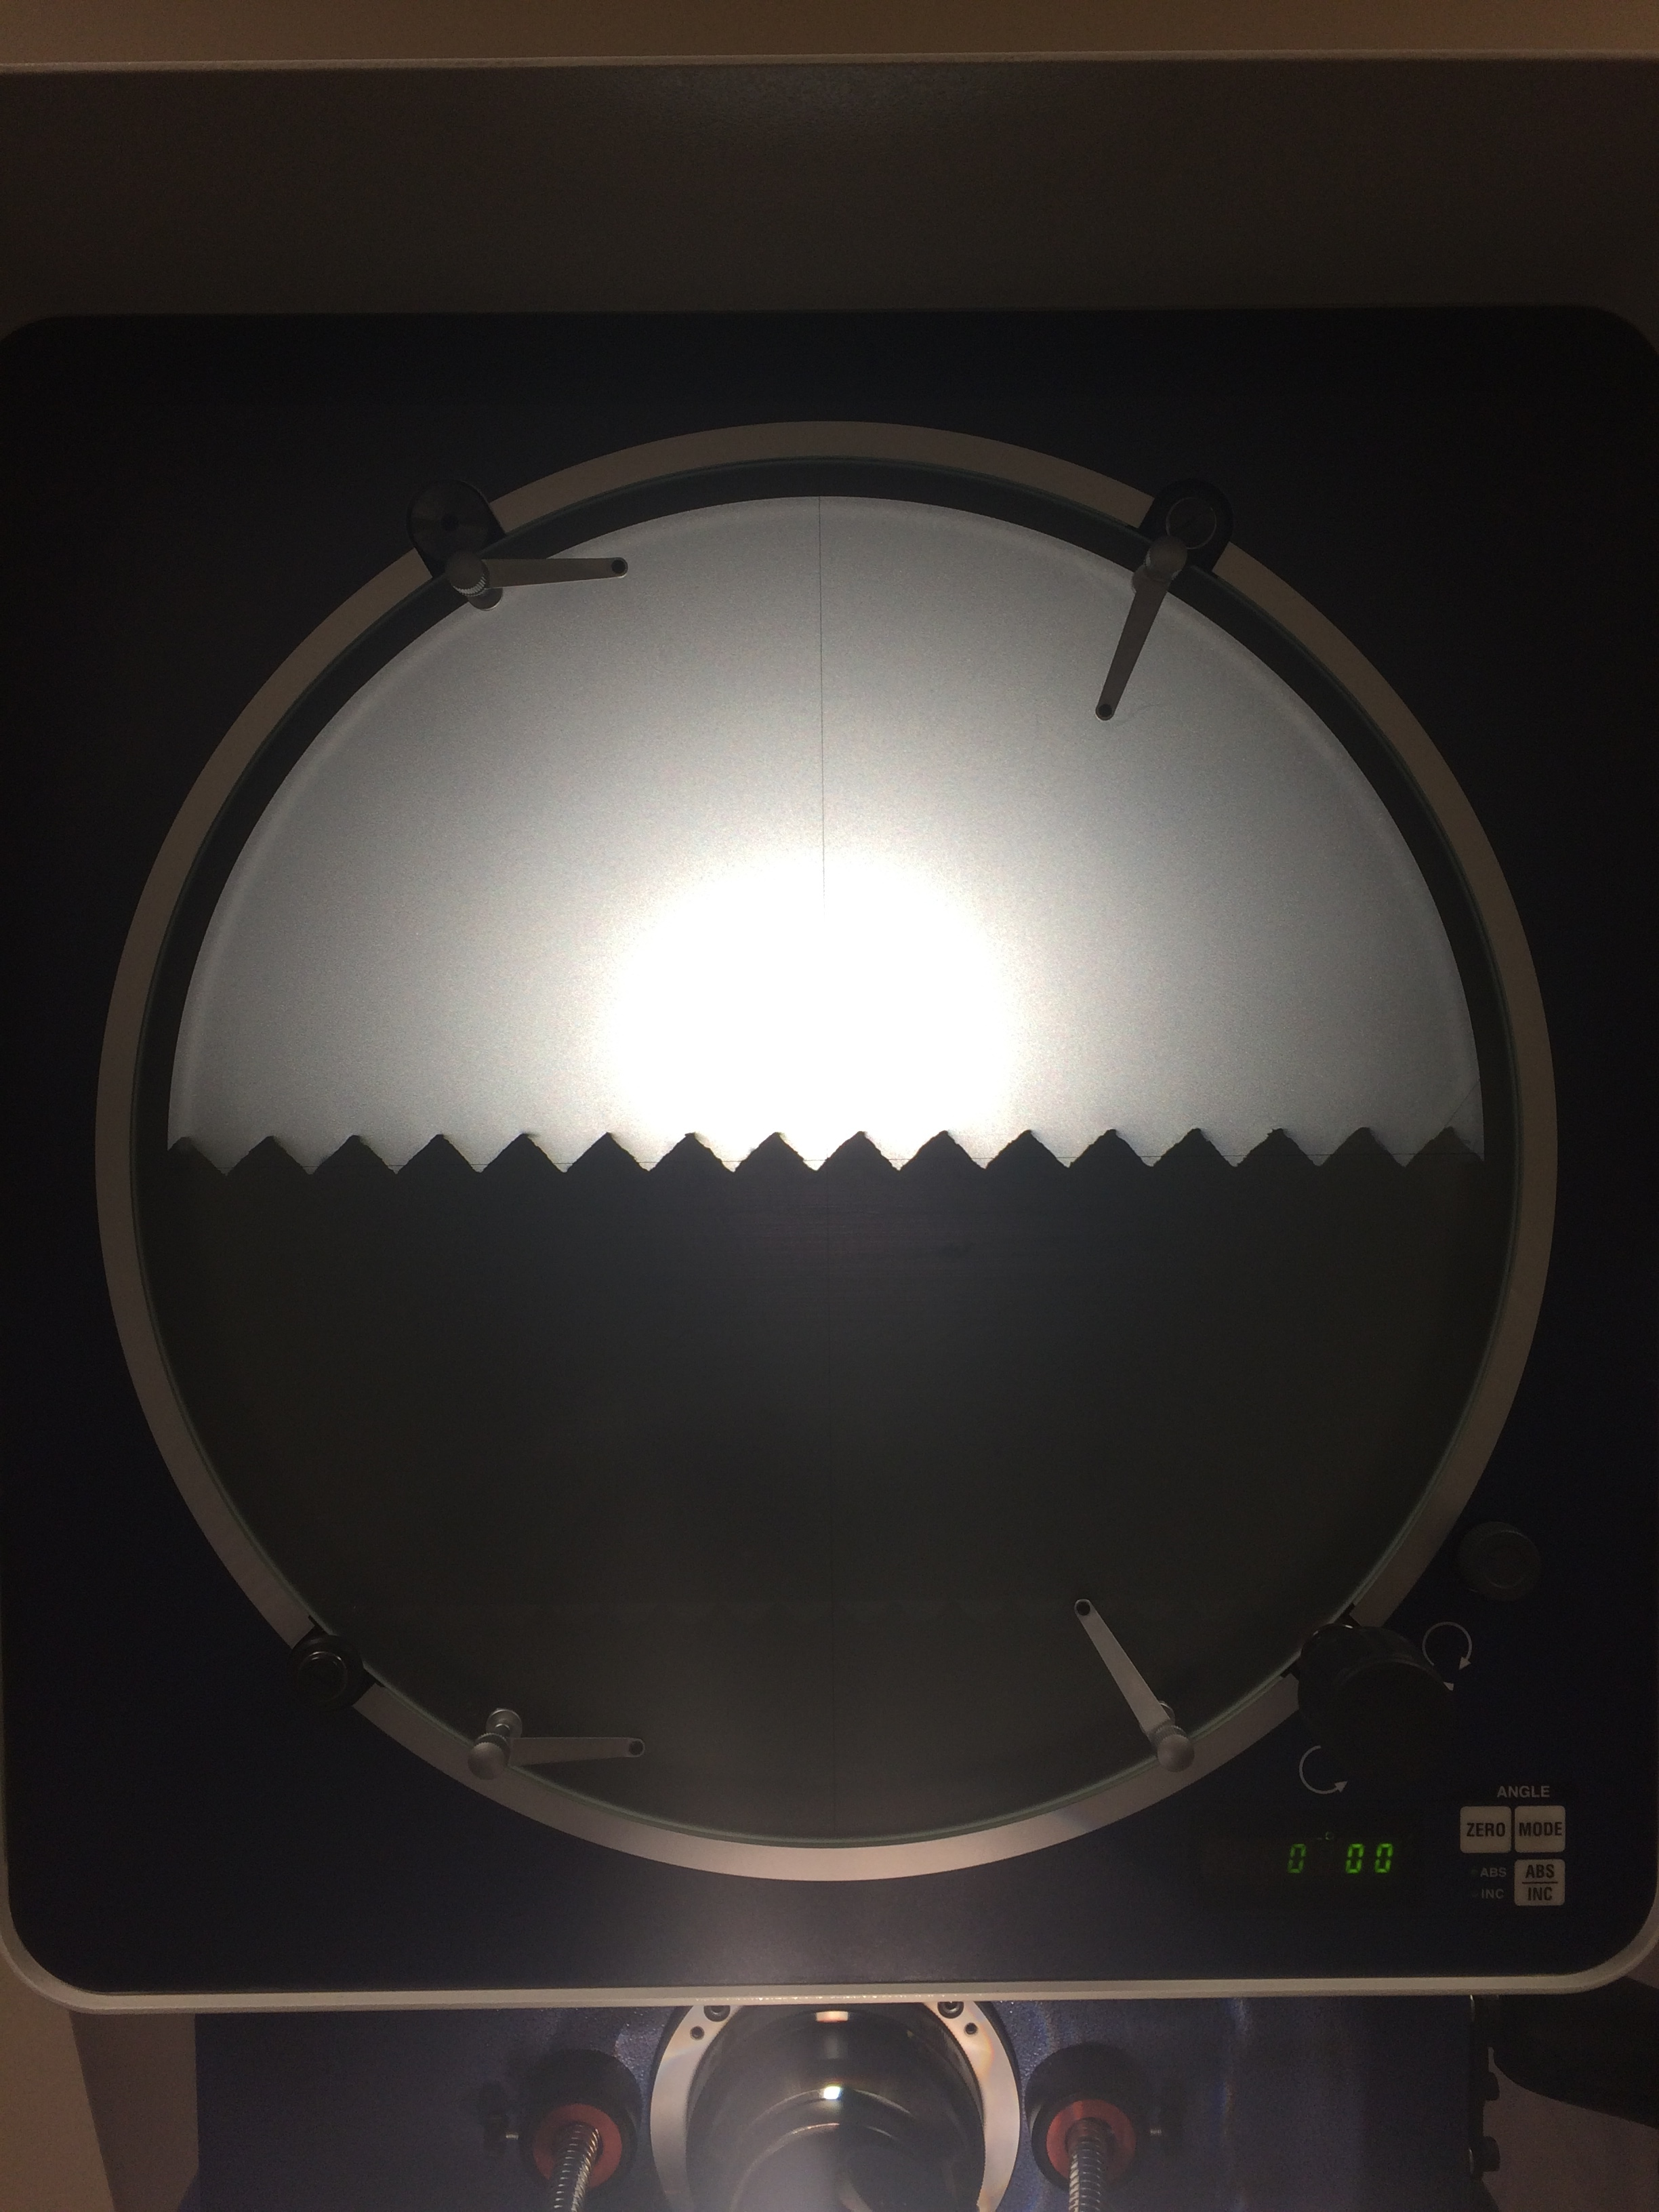 These are the teeth of one of the microbend gratings seen on a comparator. The comparator was used to verify the tooth profile and pitch of the teeth.